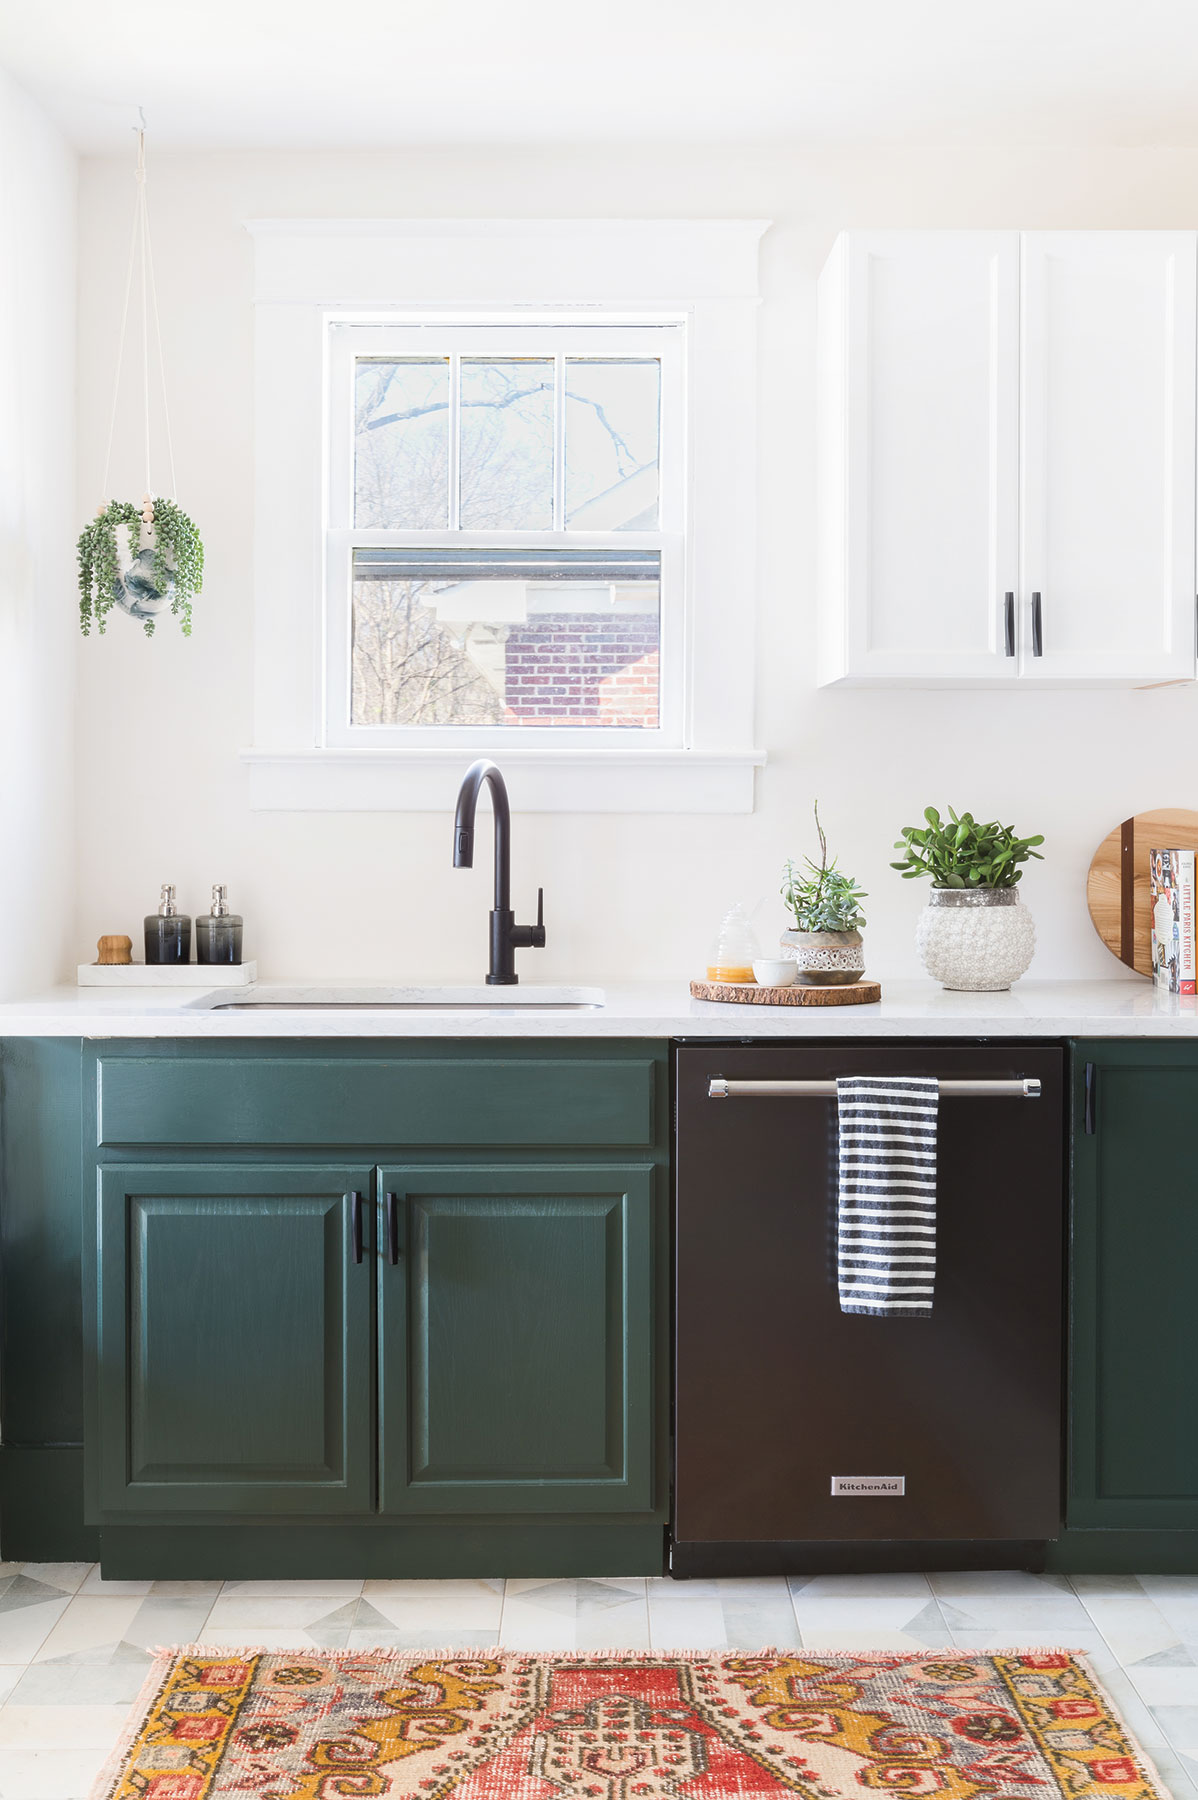 7 Kitchen Cabinet Colors We Can't Stop Swooning Over